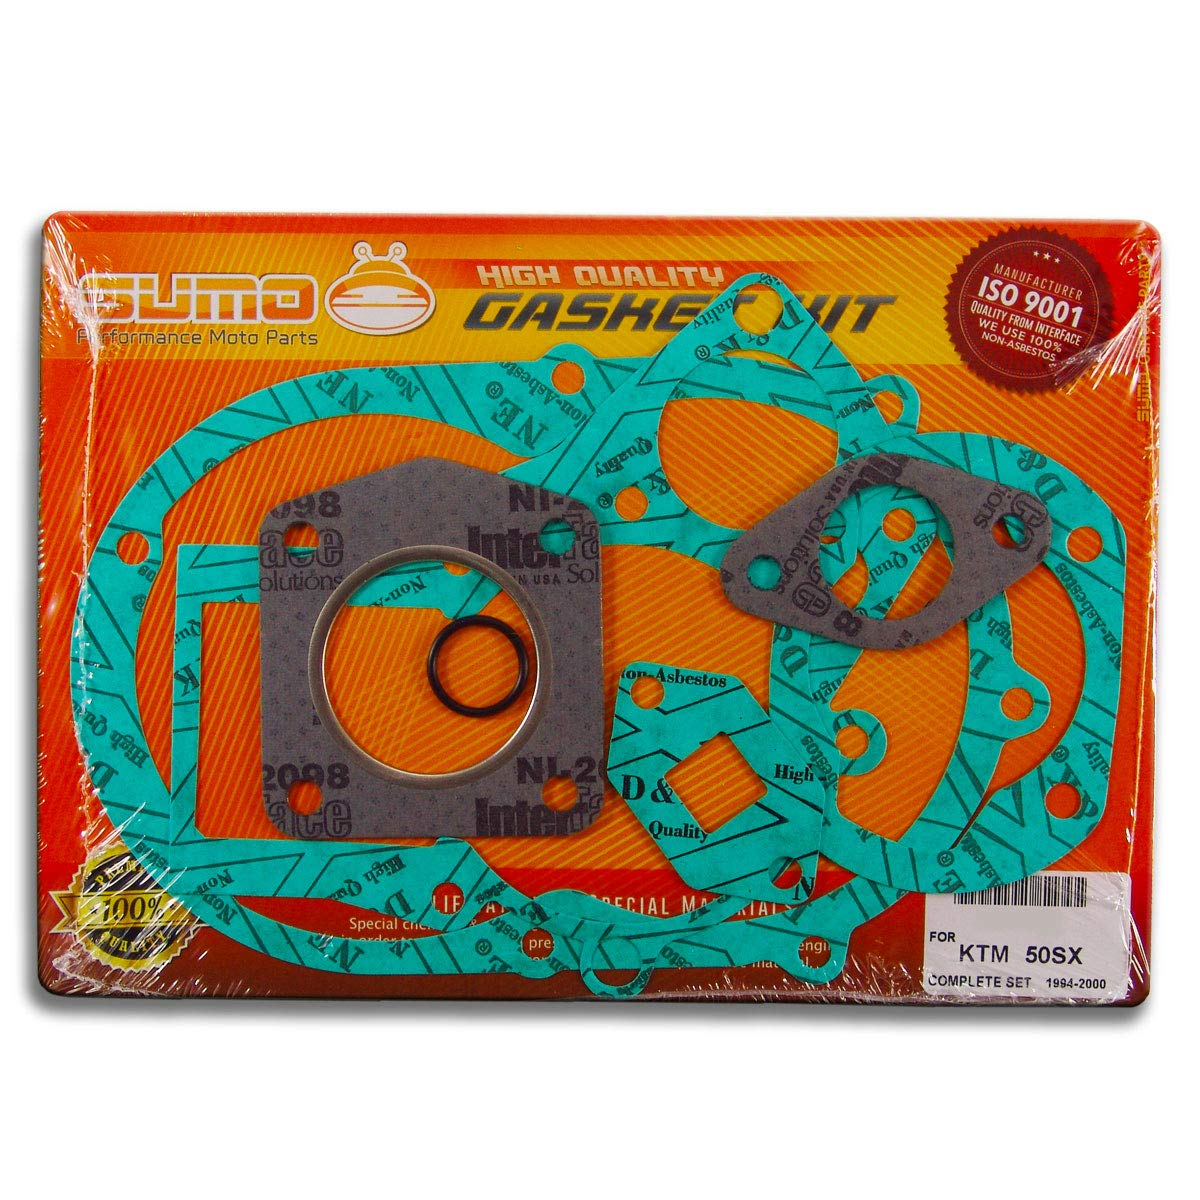 1994-2000 Sumo Complete Engine Gasket Kit Set for KTM 50 SX 50 SXR 50 Pro Junior Adventure Senior